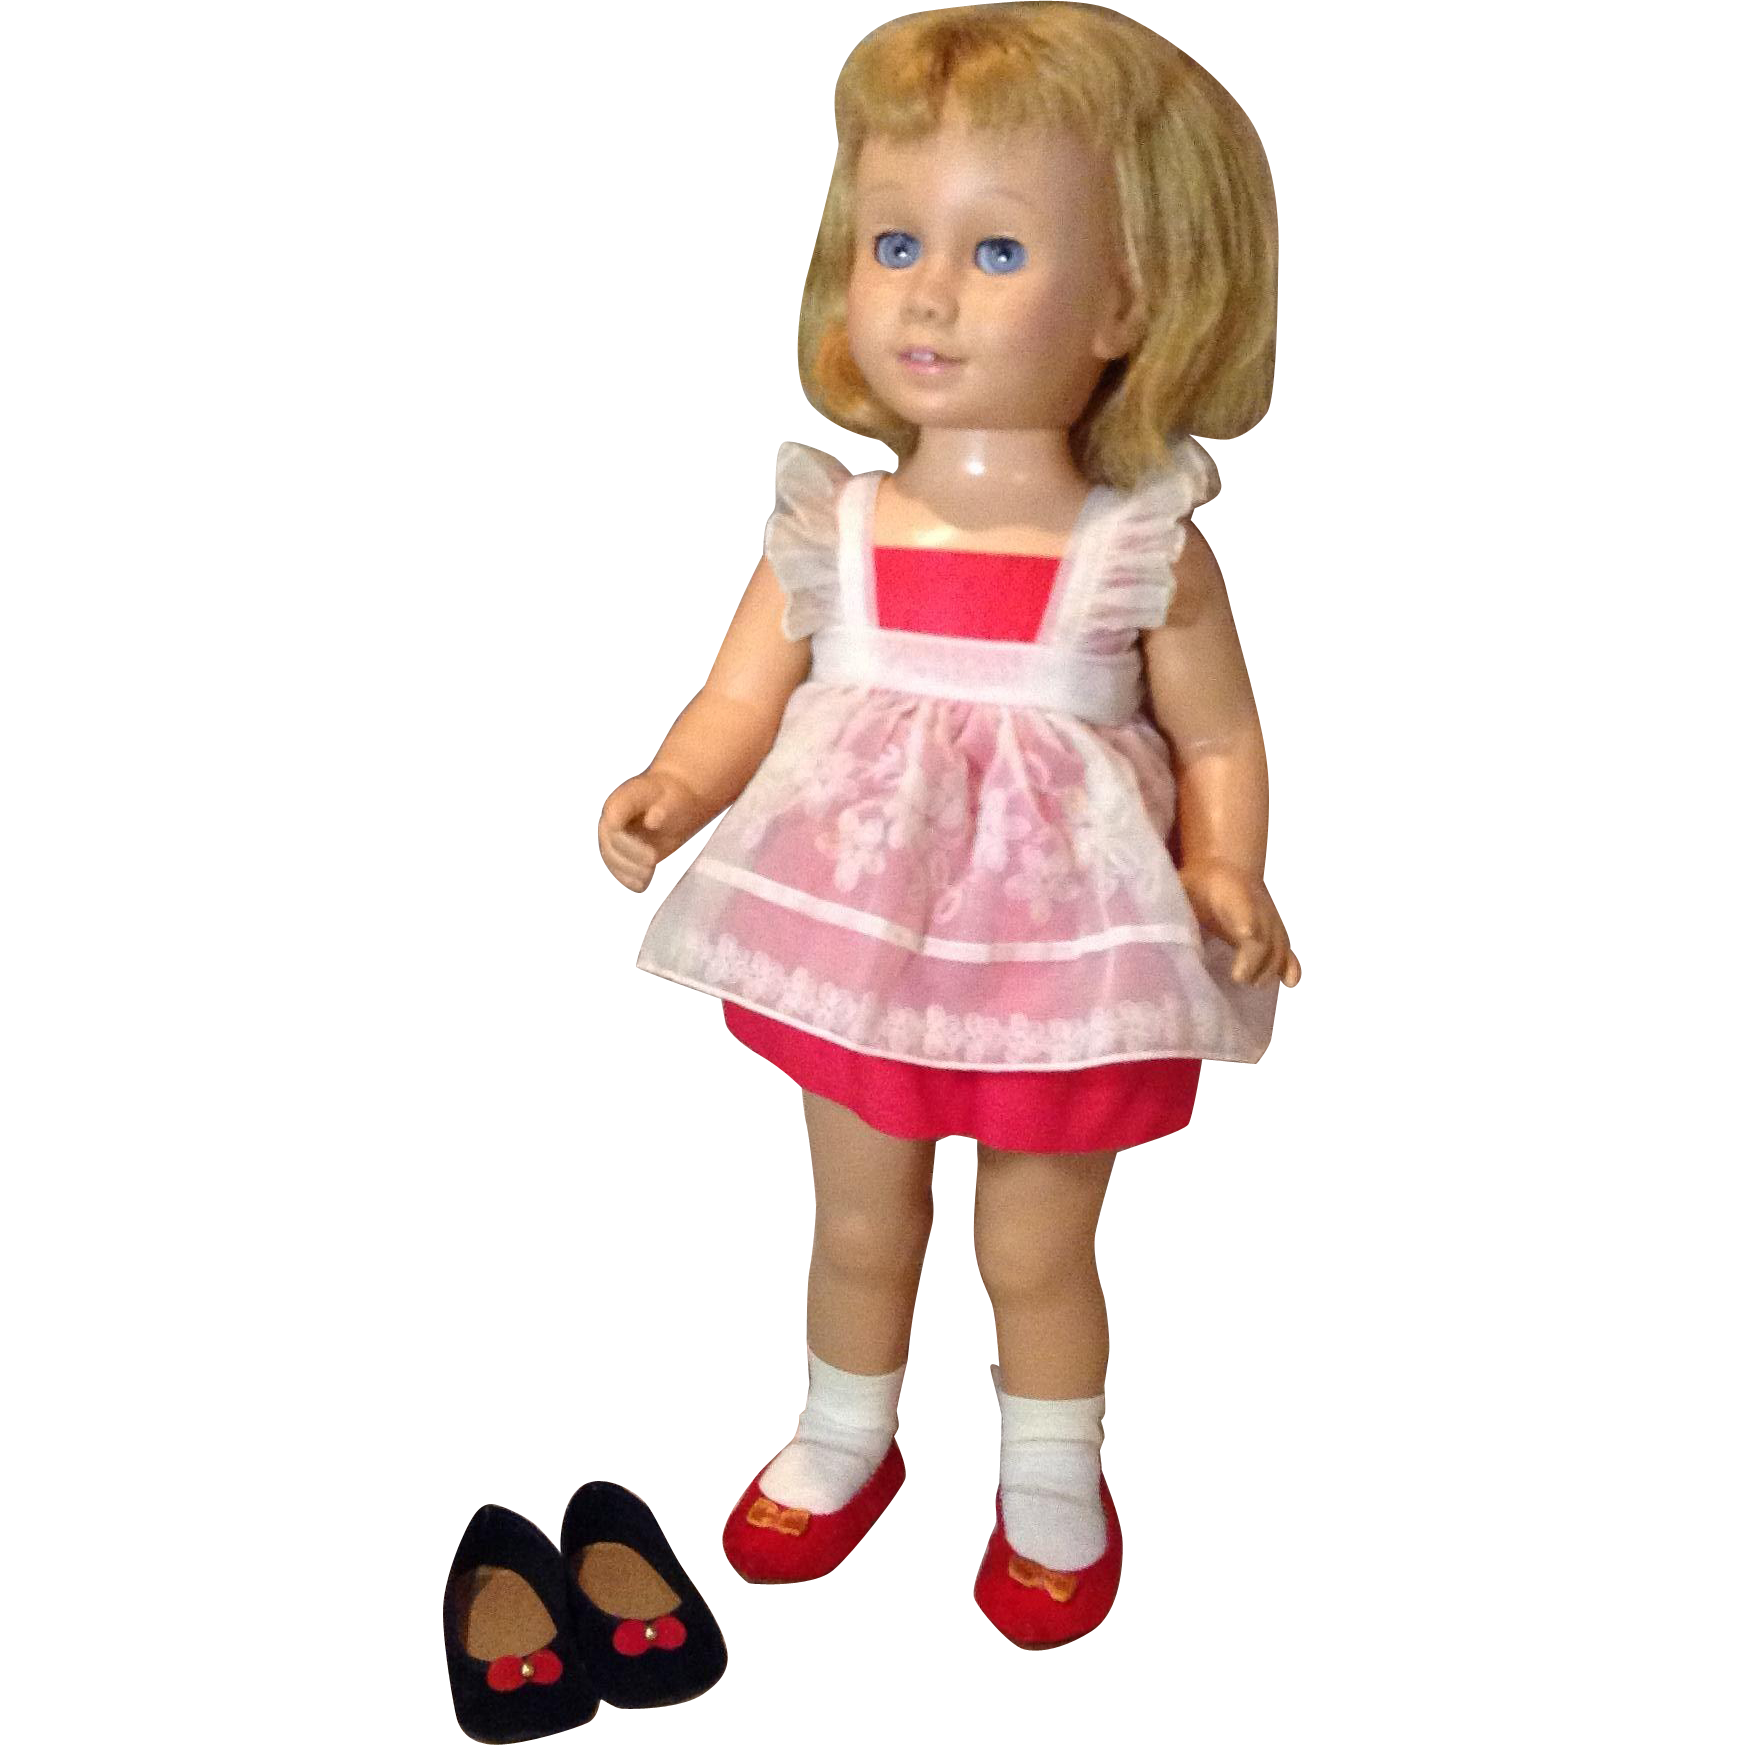 C.1959 Mattel Chatty Cathy Prototype Model and Original Clothes